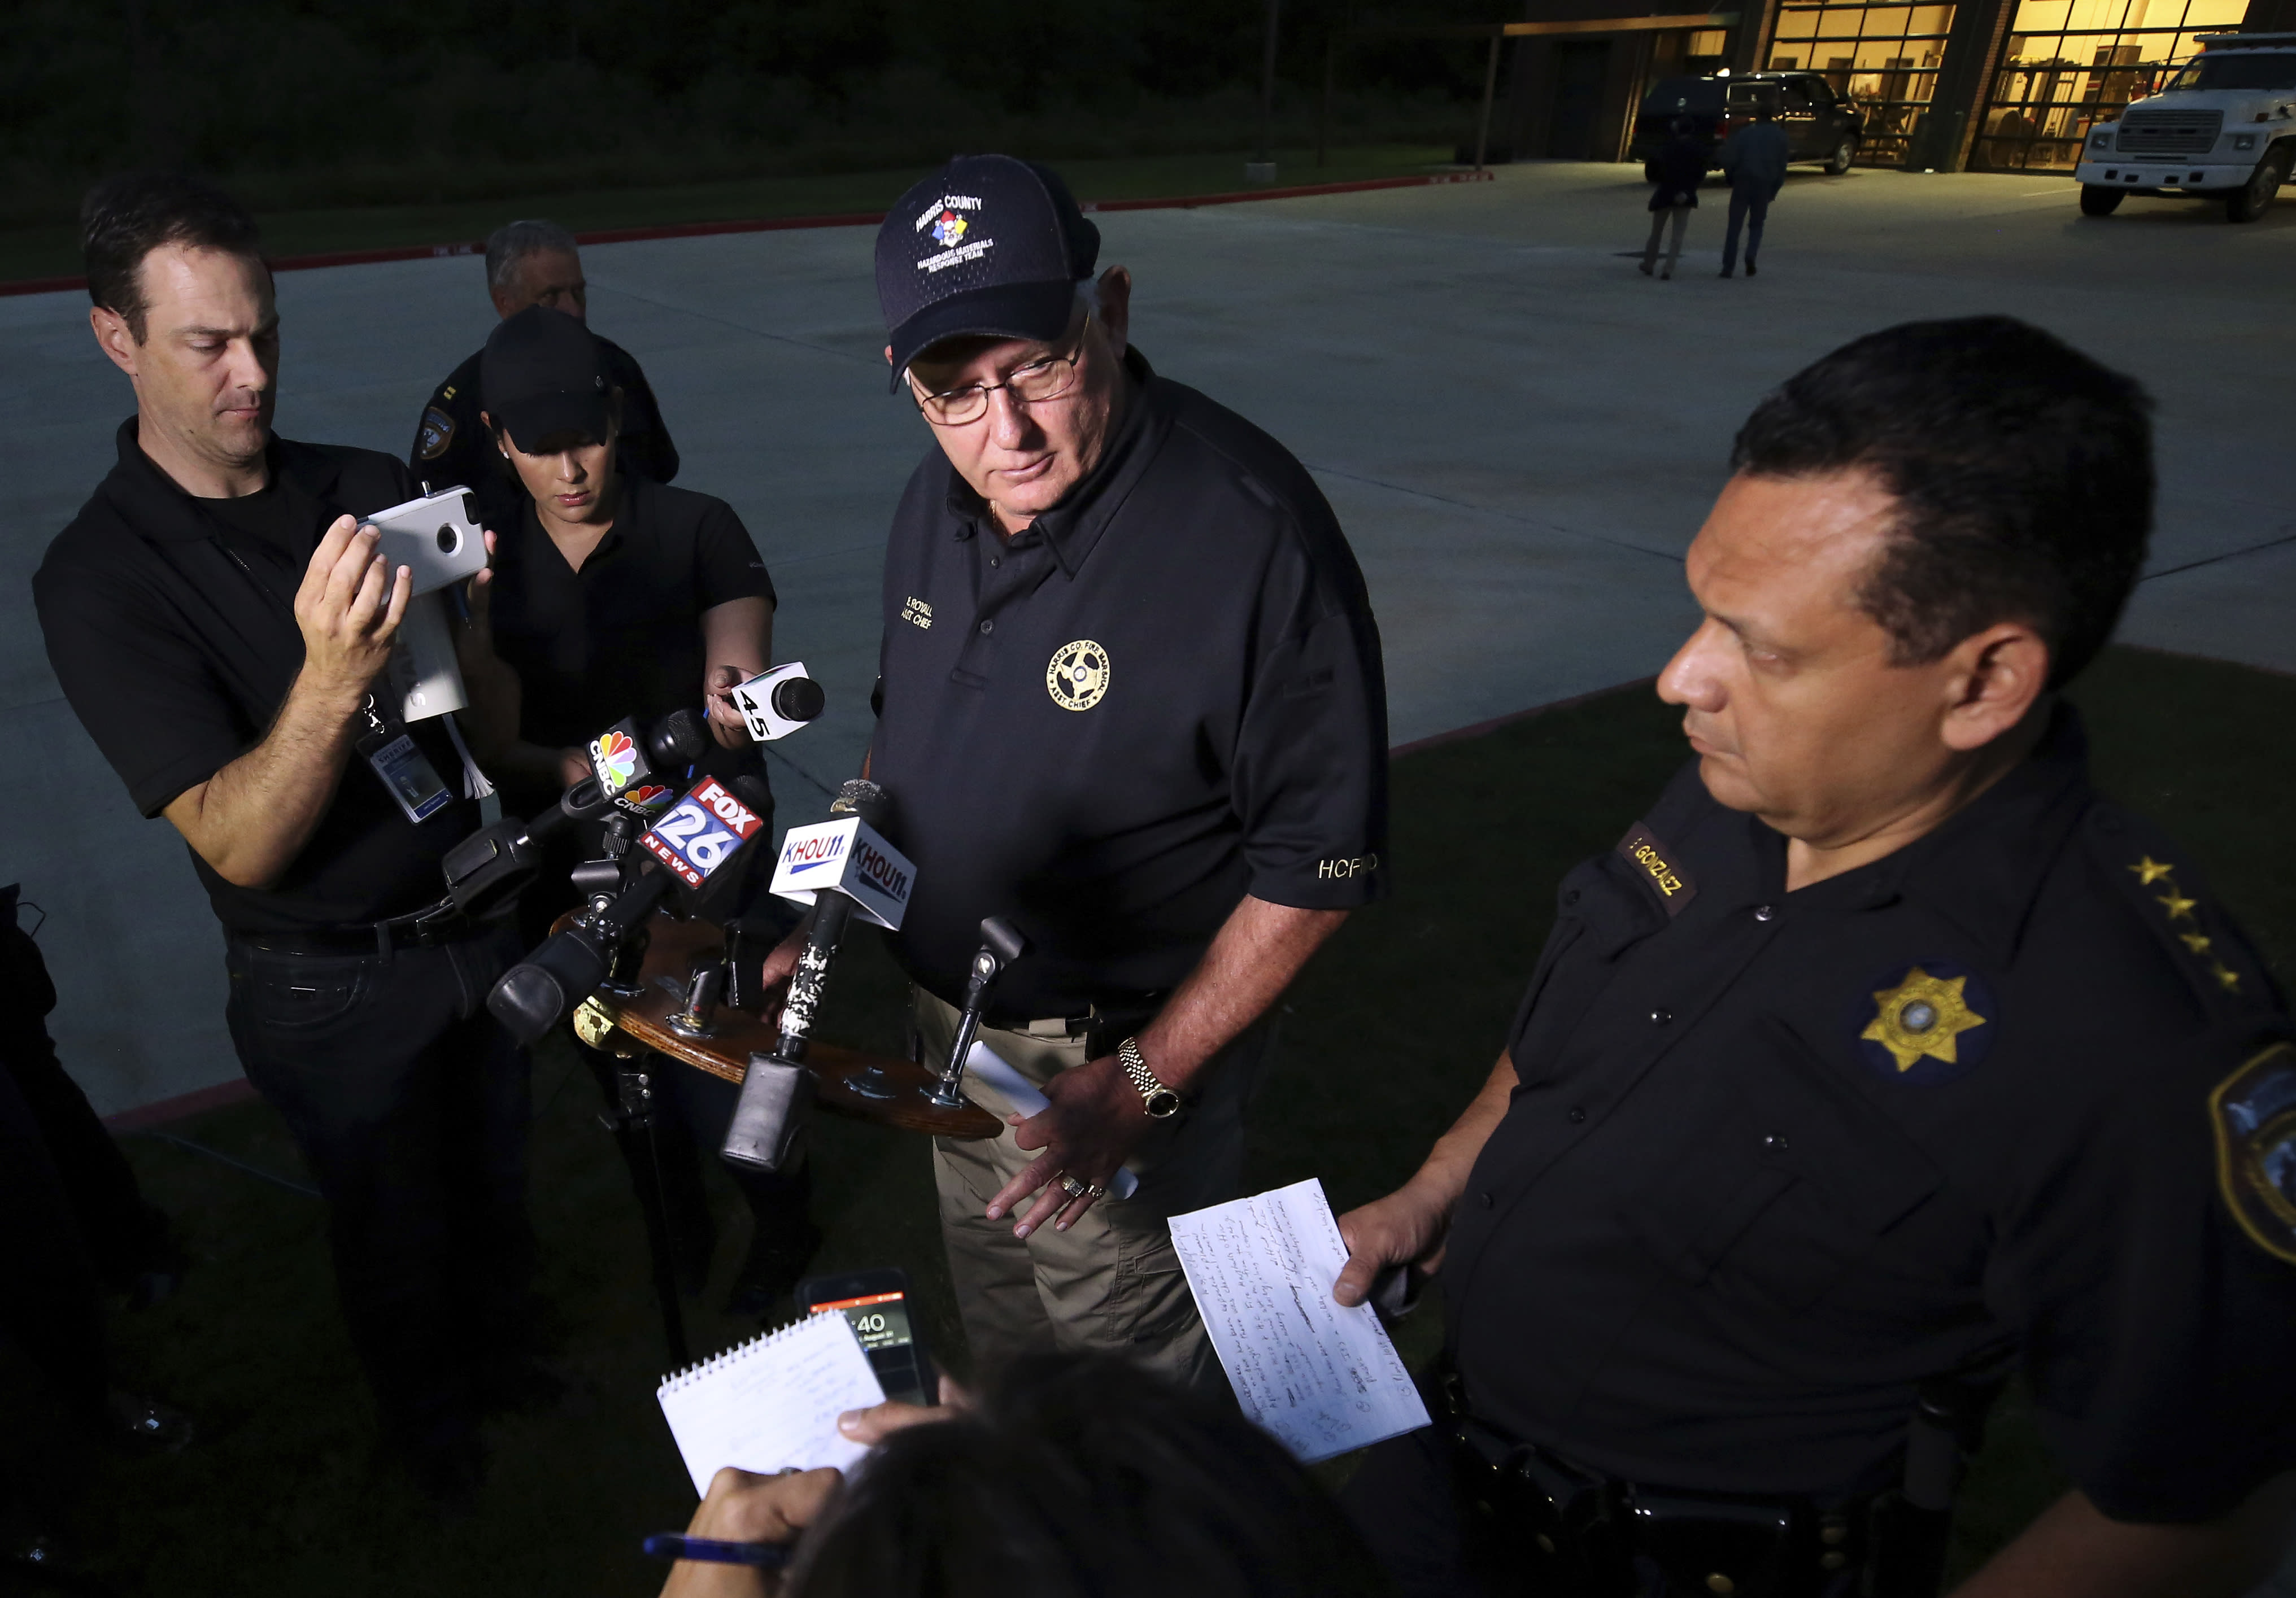 <p>Harris County Fire Marshal Assistant Chief Bob Royall, center, and Harris County Sheriff Ed Gonzalez speak about the explosion of organic peroxides at the Arkema chemical plant during a press conference outside the Crosby Fire Department Thursday, Aug. 31, 2017, in Crosby, Texas. Fifteen Harris County Sheriff Office deputies that first responded to the fire at the plant were sent to the hospital. (Photo: Godofredo A. Vasquez/Houston Chronicle via AP) </p>